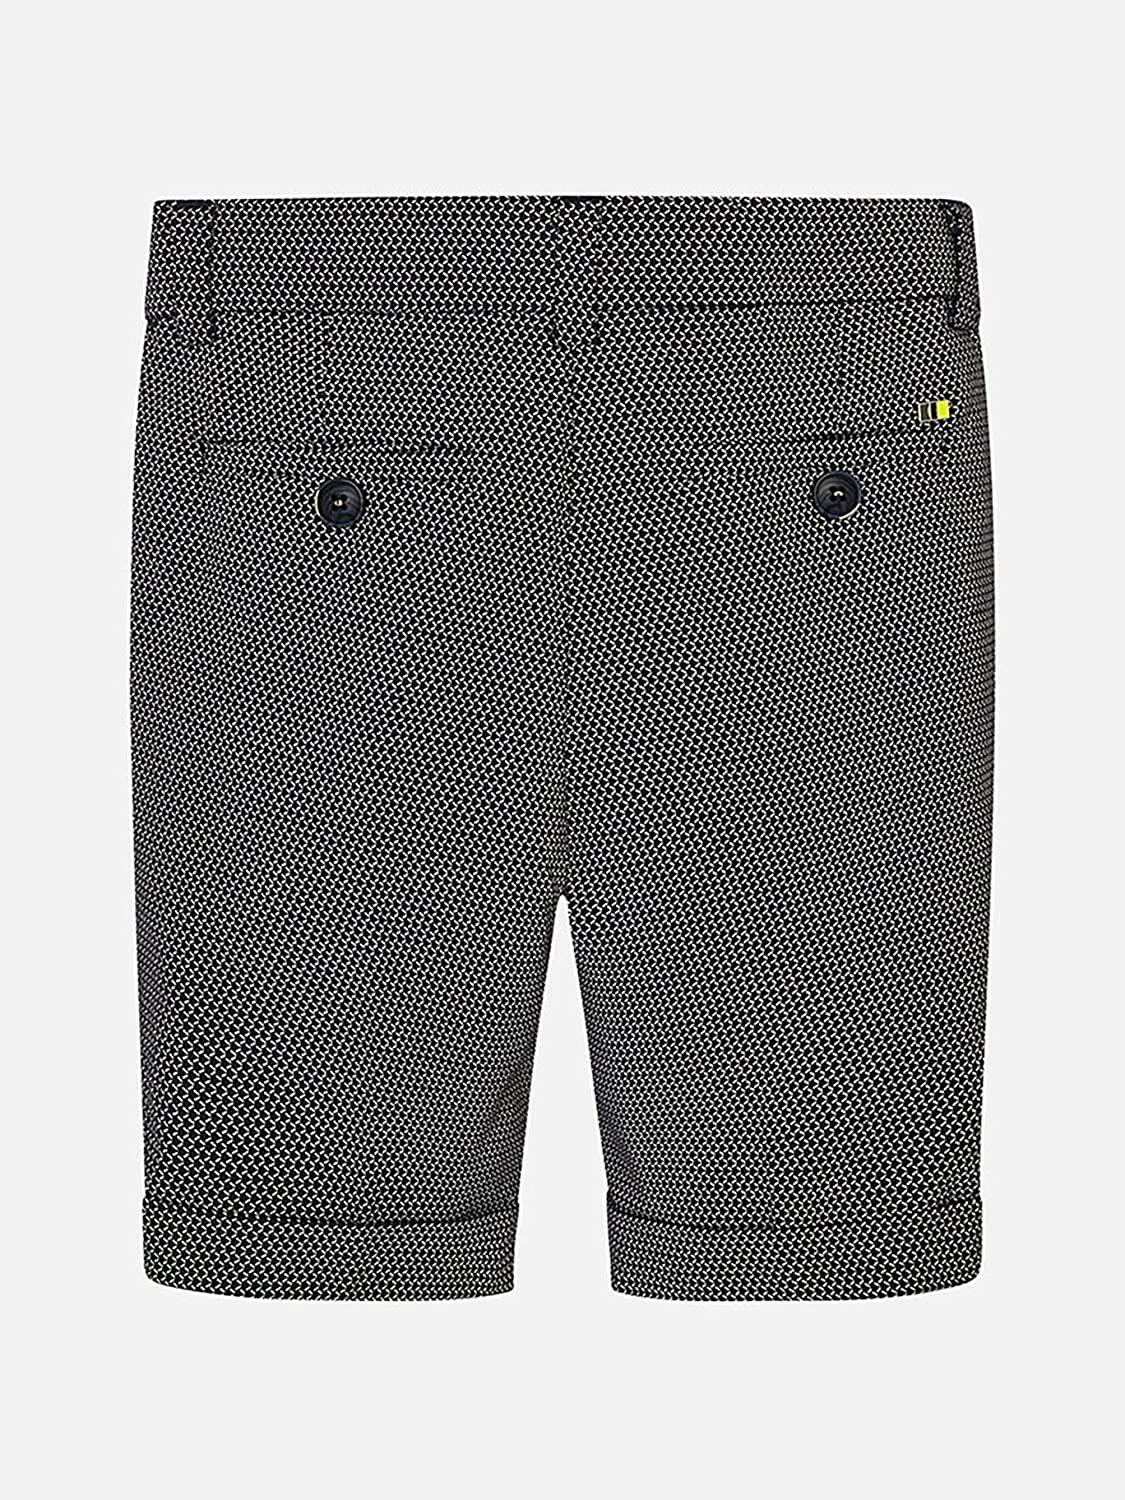 3225 Mayoral Printed Tailored Linen Shorts for Boys